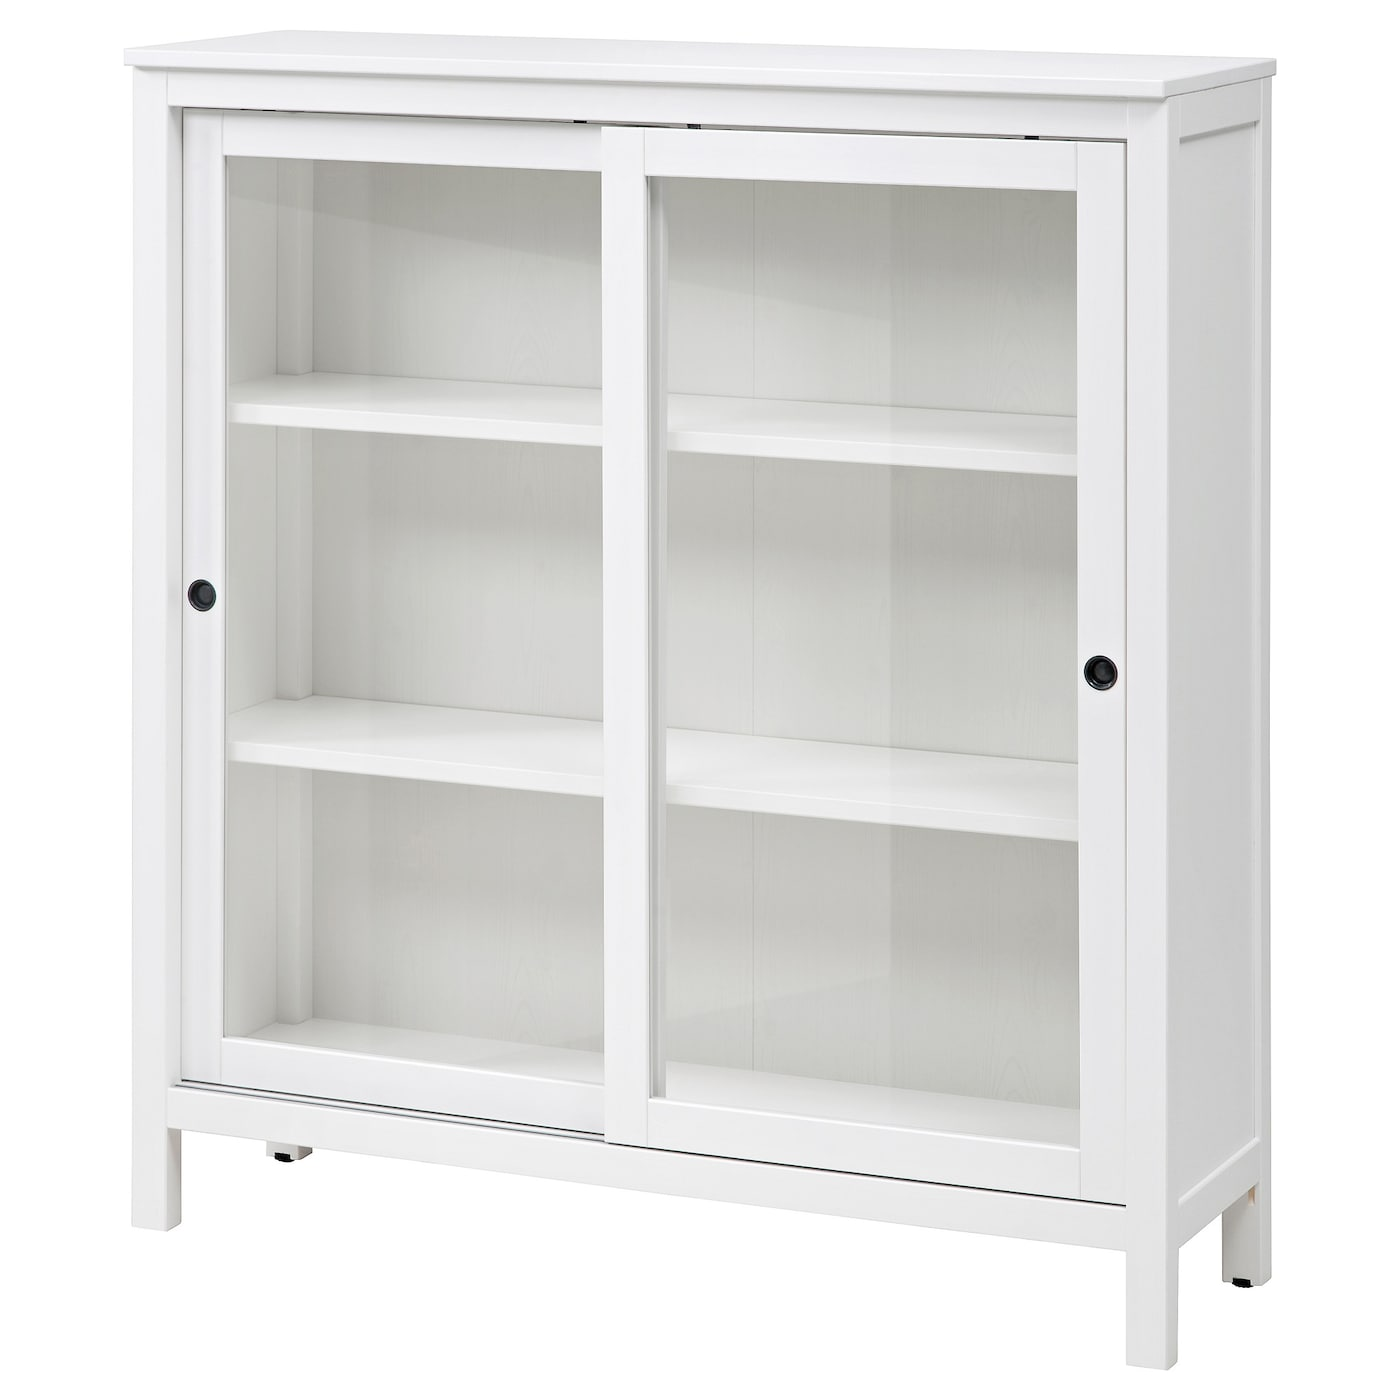 hemnes vitrine teint blanc 120x130 cm ikea. Black Bedroom Furniture Sets. Home Design Ideas